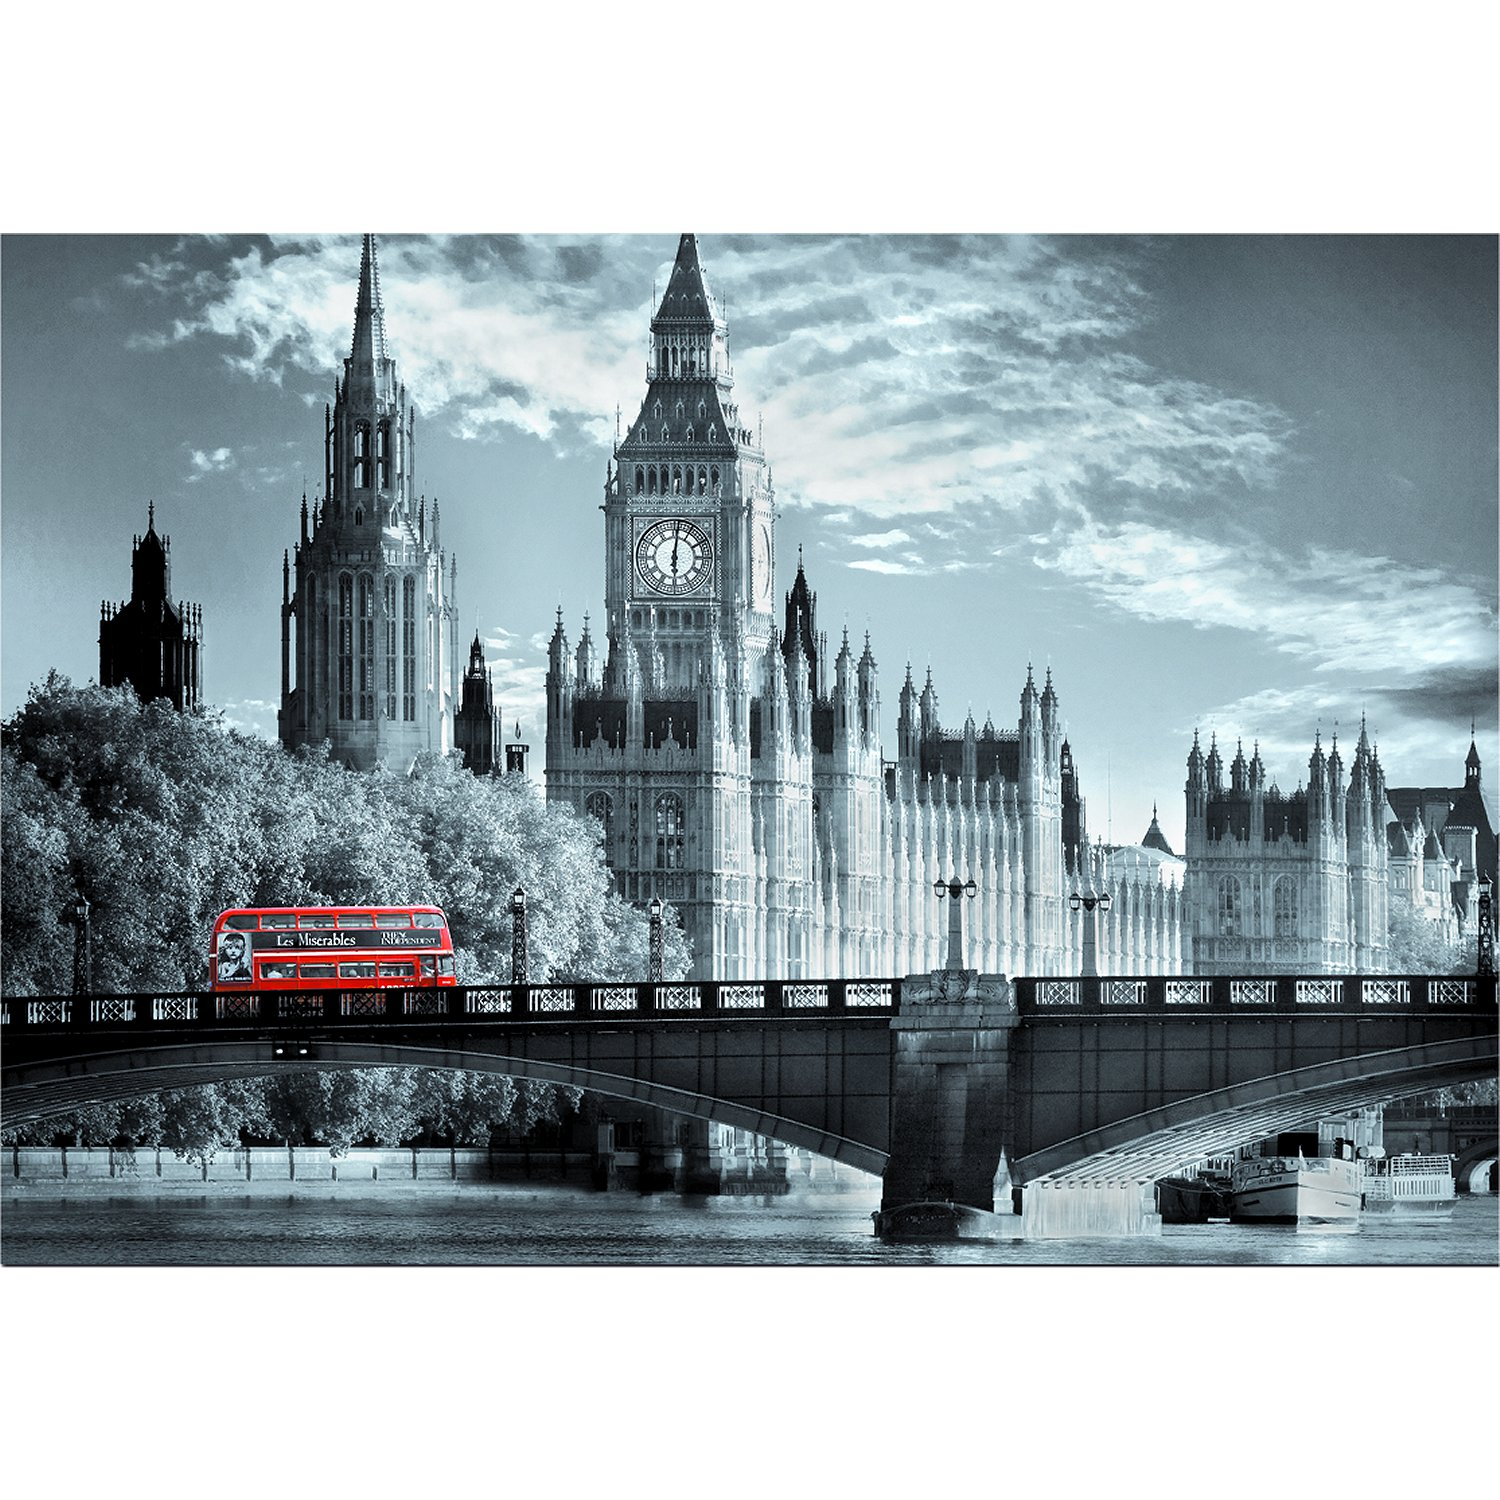 bus londres puzzle 1000 format paysage educa puzzle acheter en ligne. Black Bedroom Furniture Sets. Home Design Ideas